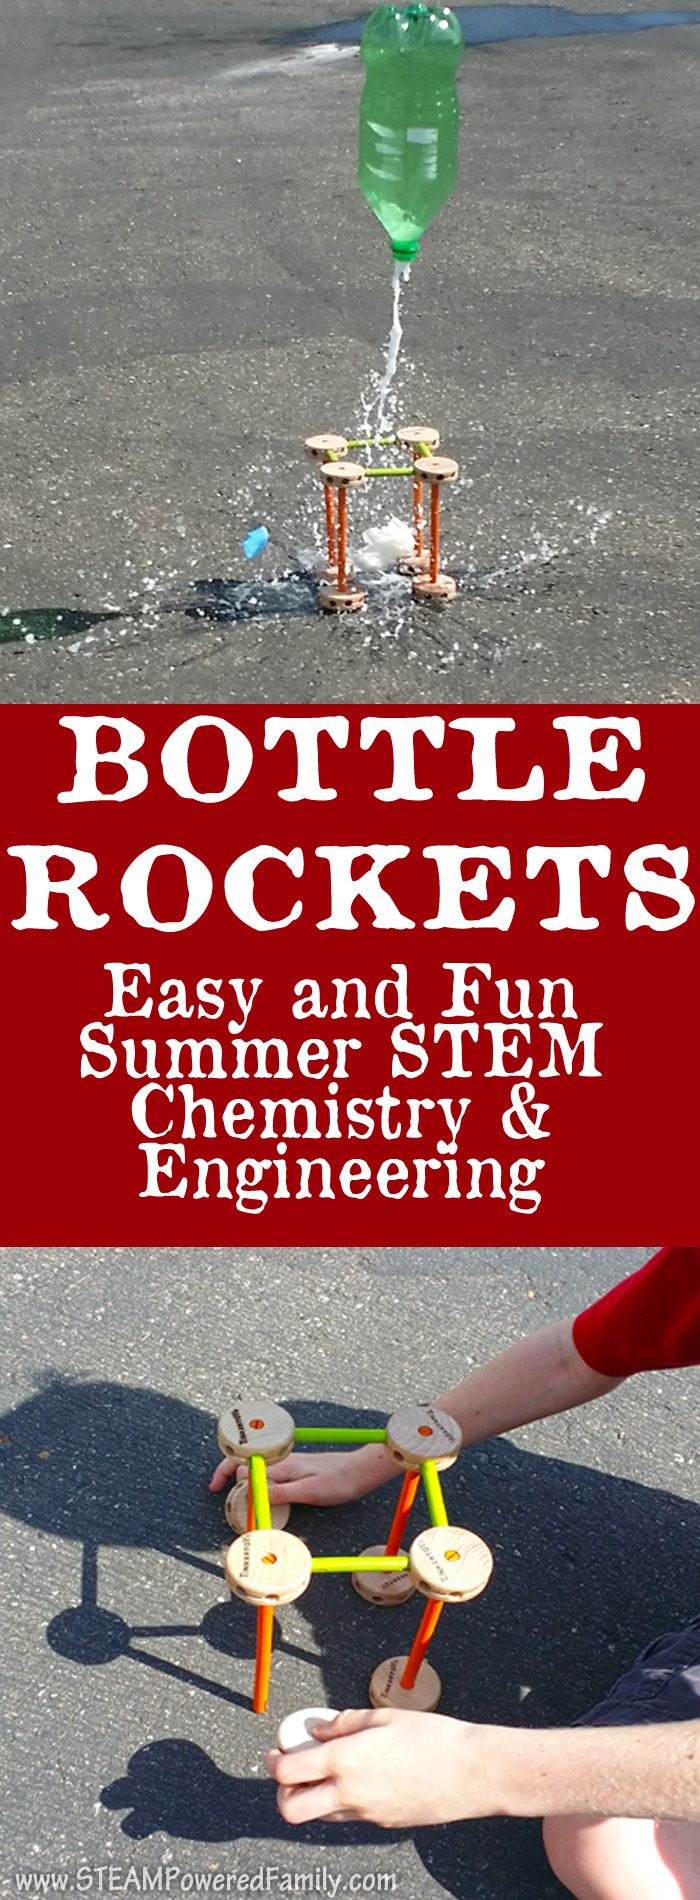 Bottle Rockets - Simple and Fun Summer STEM with Chemistry and Engineering via @steampoweredfam